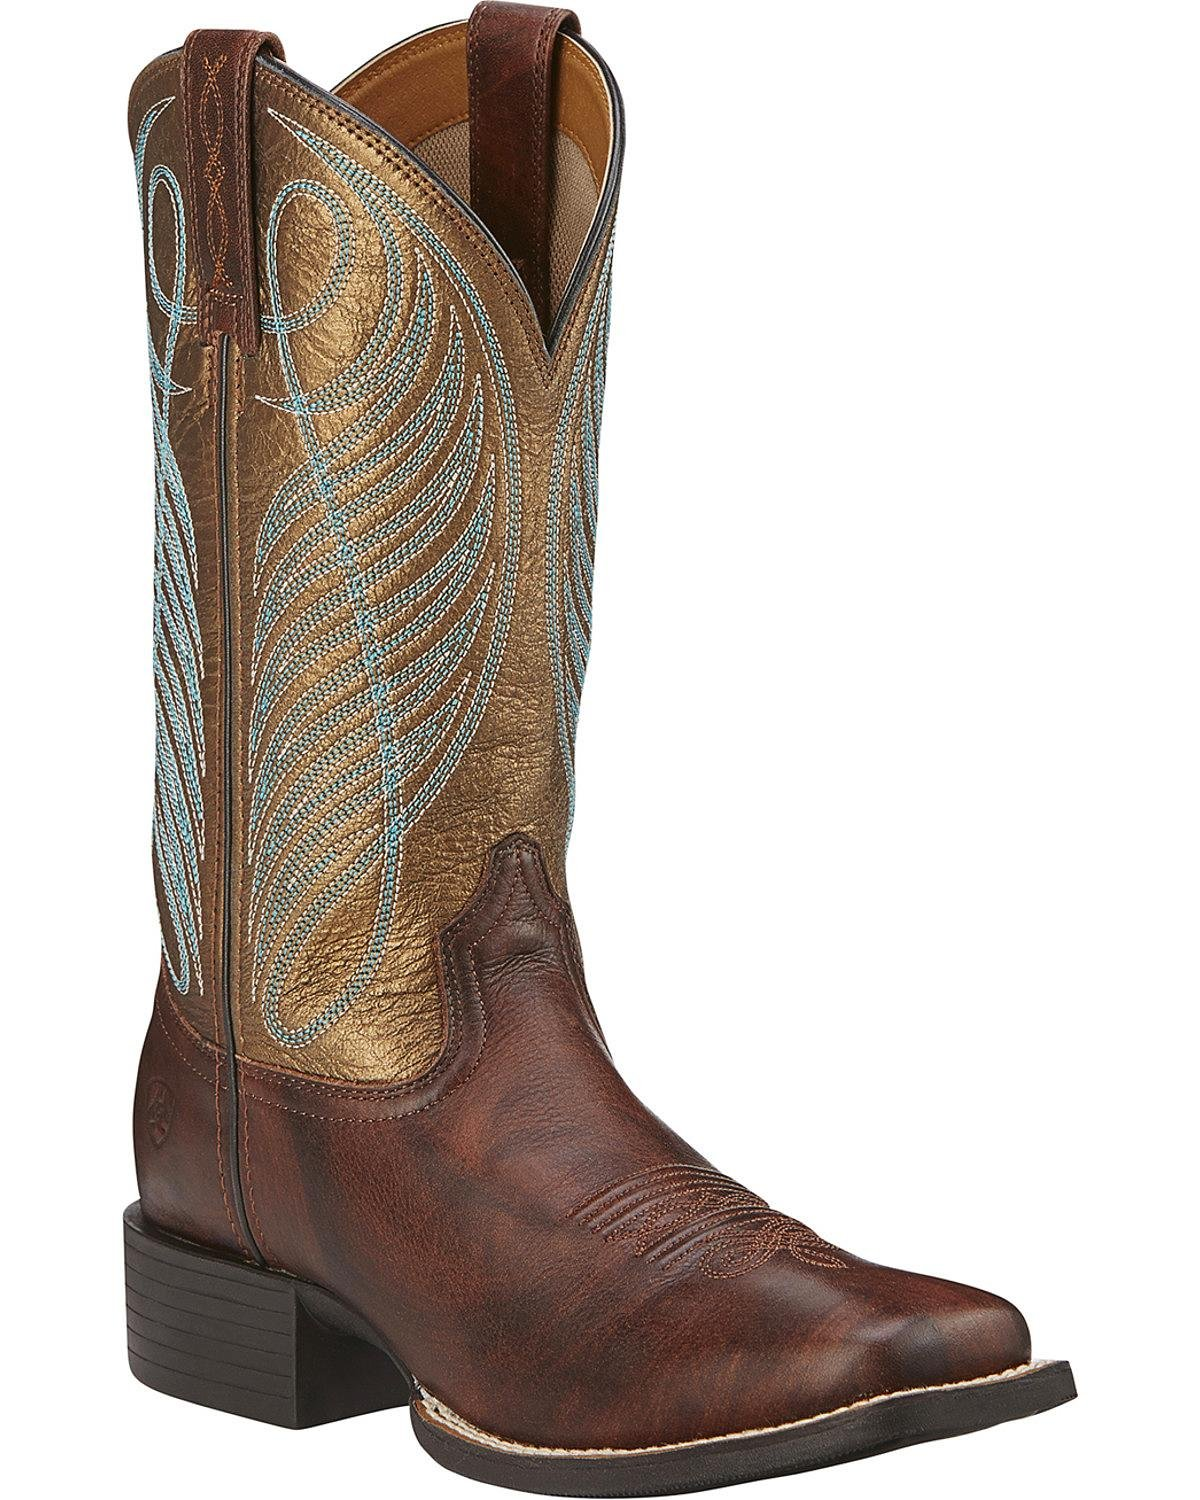 Ariat Women's Round up Wide Square Toe Western Cowboy Boot B00U9XW3CG 8.5 C/D US|Yukon Brown